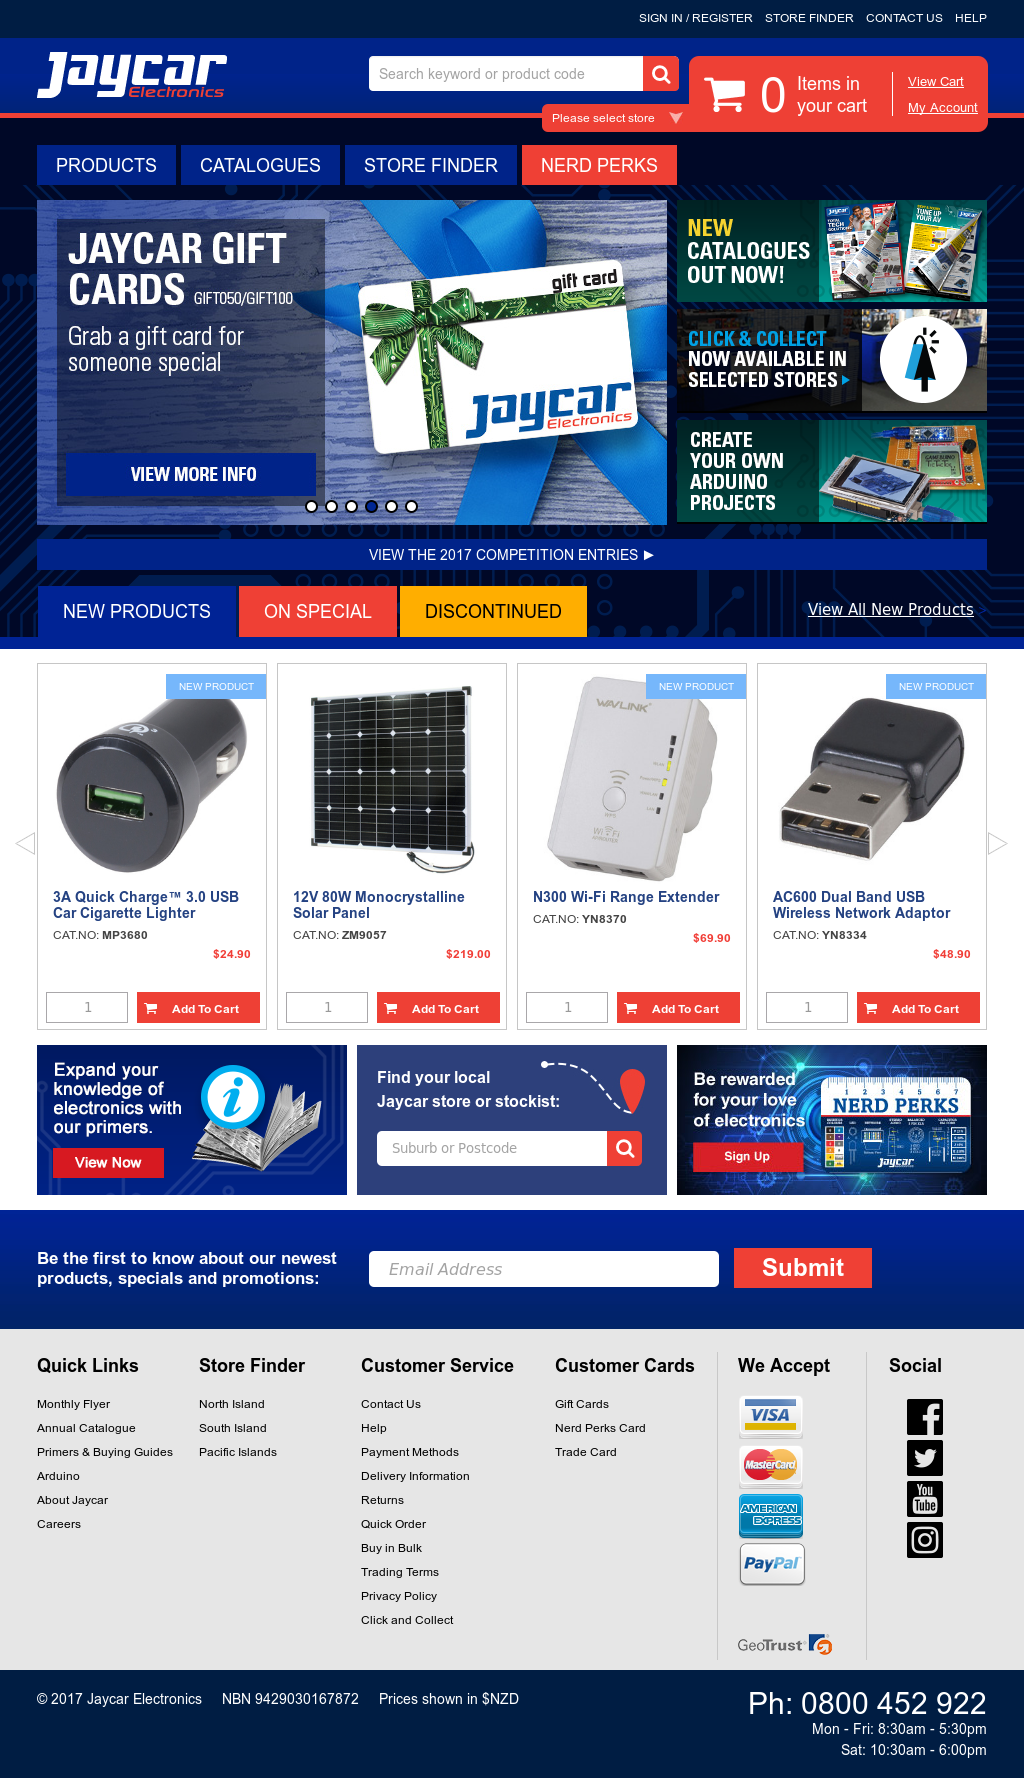 3 Way Switch Jaycar Wiring Diagrams Data Base Arduino Toggle Source Competitors Revenue And Employees Owler Company Profile Rh Com At Website History For